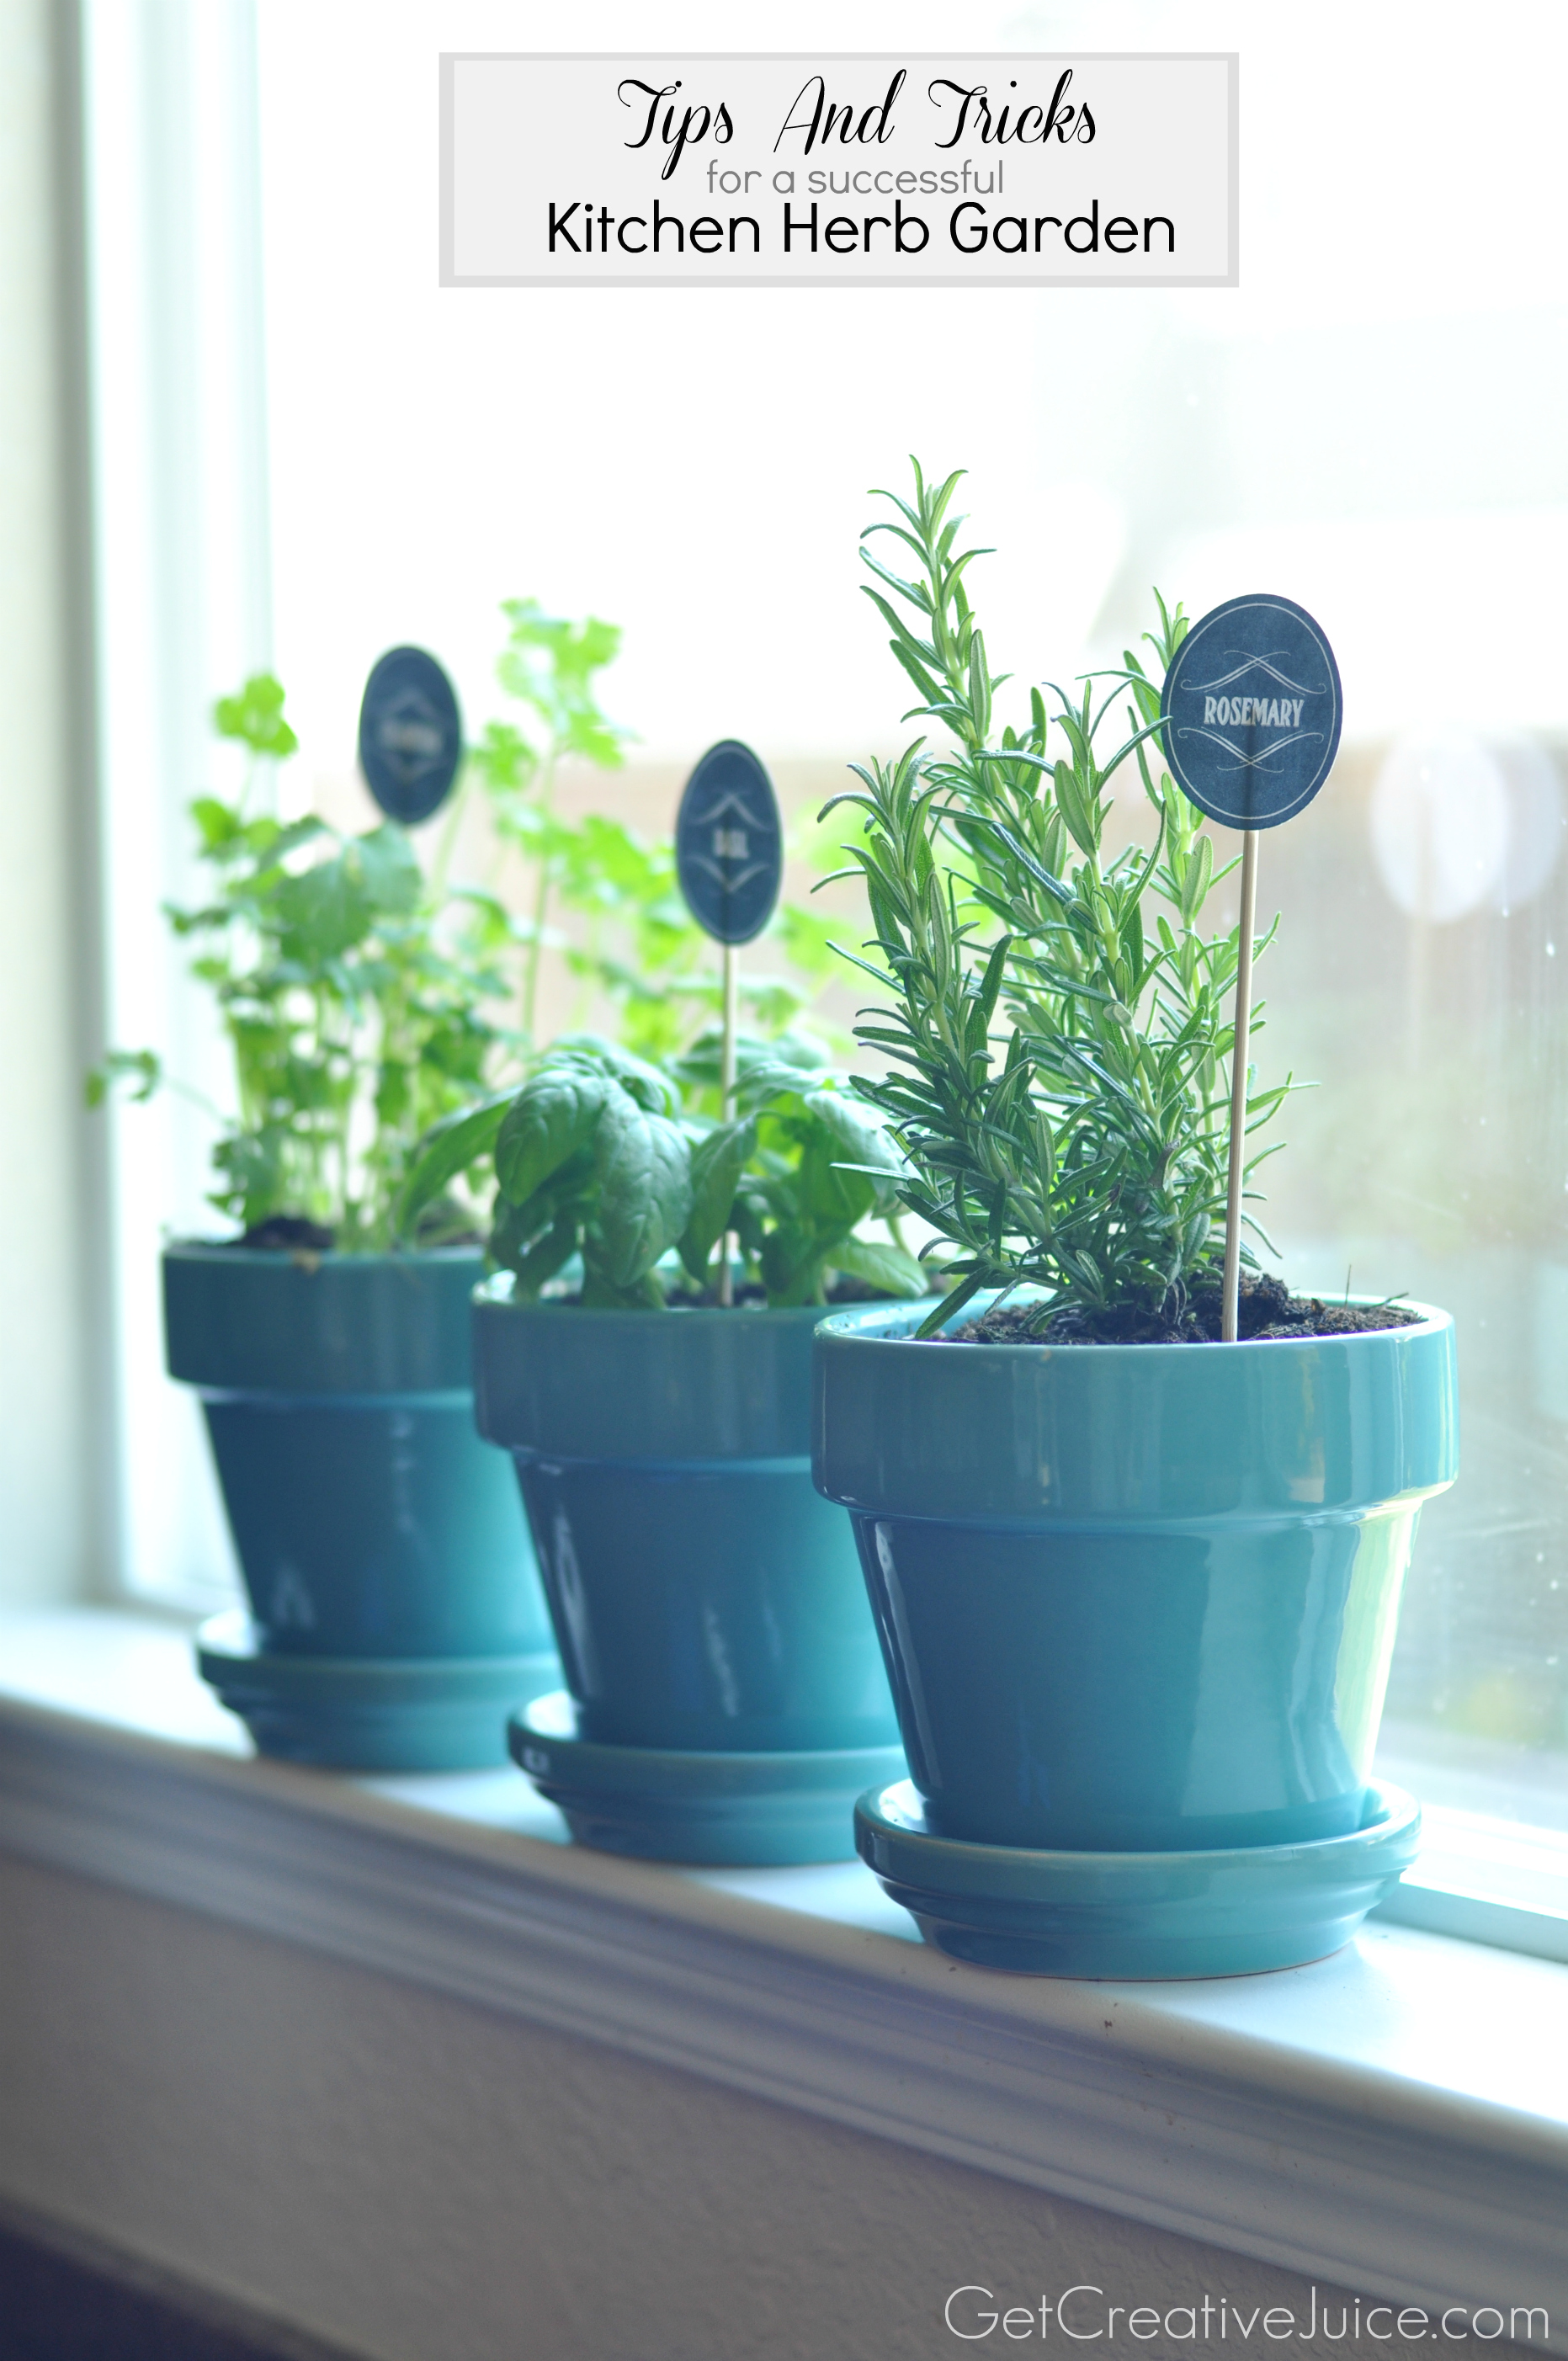 Best Pots For Indoor Herbs Tips And Tricks To Maintaining An Indoor Kitchen Herb